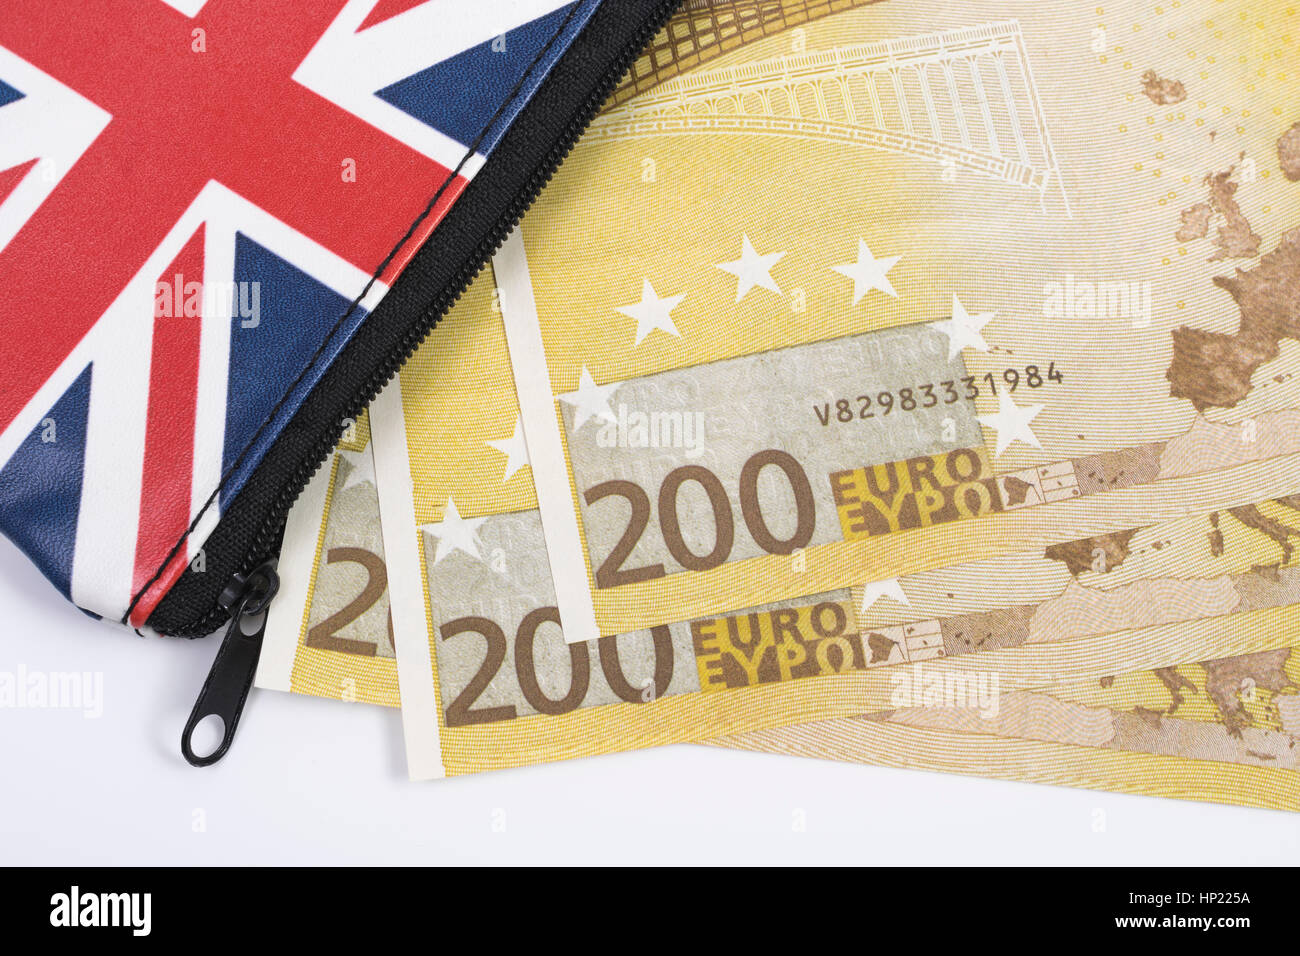 Union Jack coin purse with 200 Euro banknotes - as metaphor for Euro-Sterling echange rate. - Stock Image